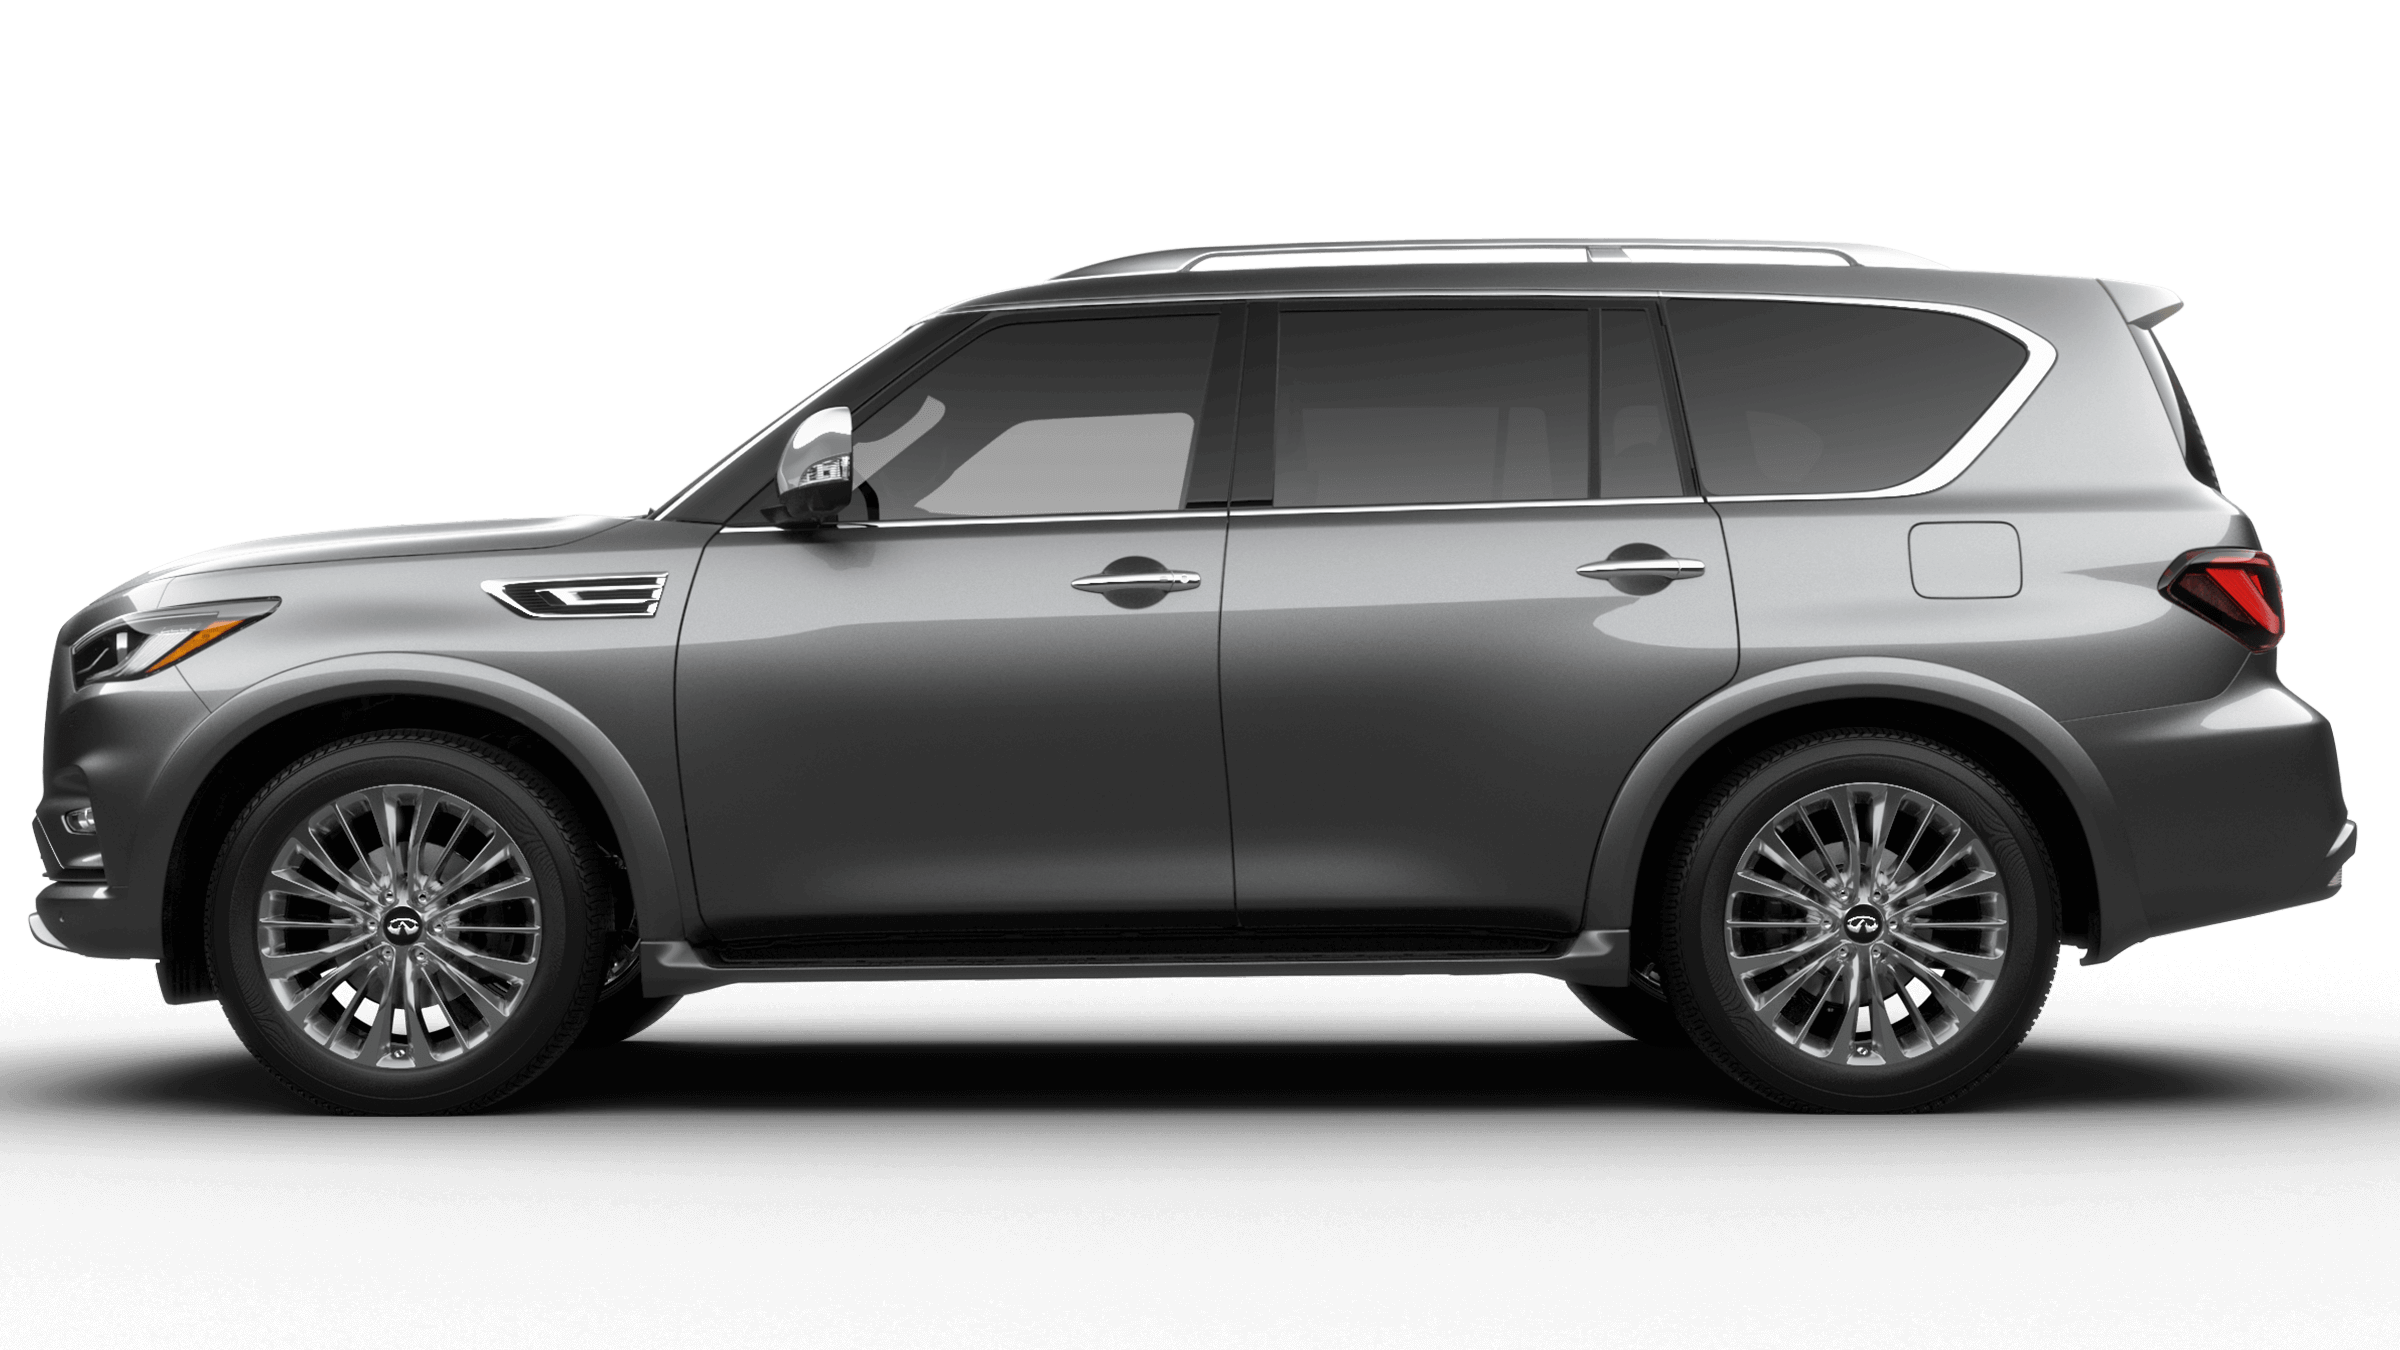 New 2021 Infiniti Qx80 Sensory AWD model for sale at Oxnard Infiniti dealership near Thousand Oaks, CA